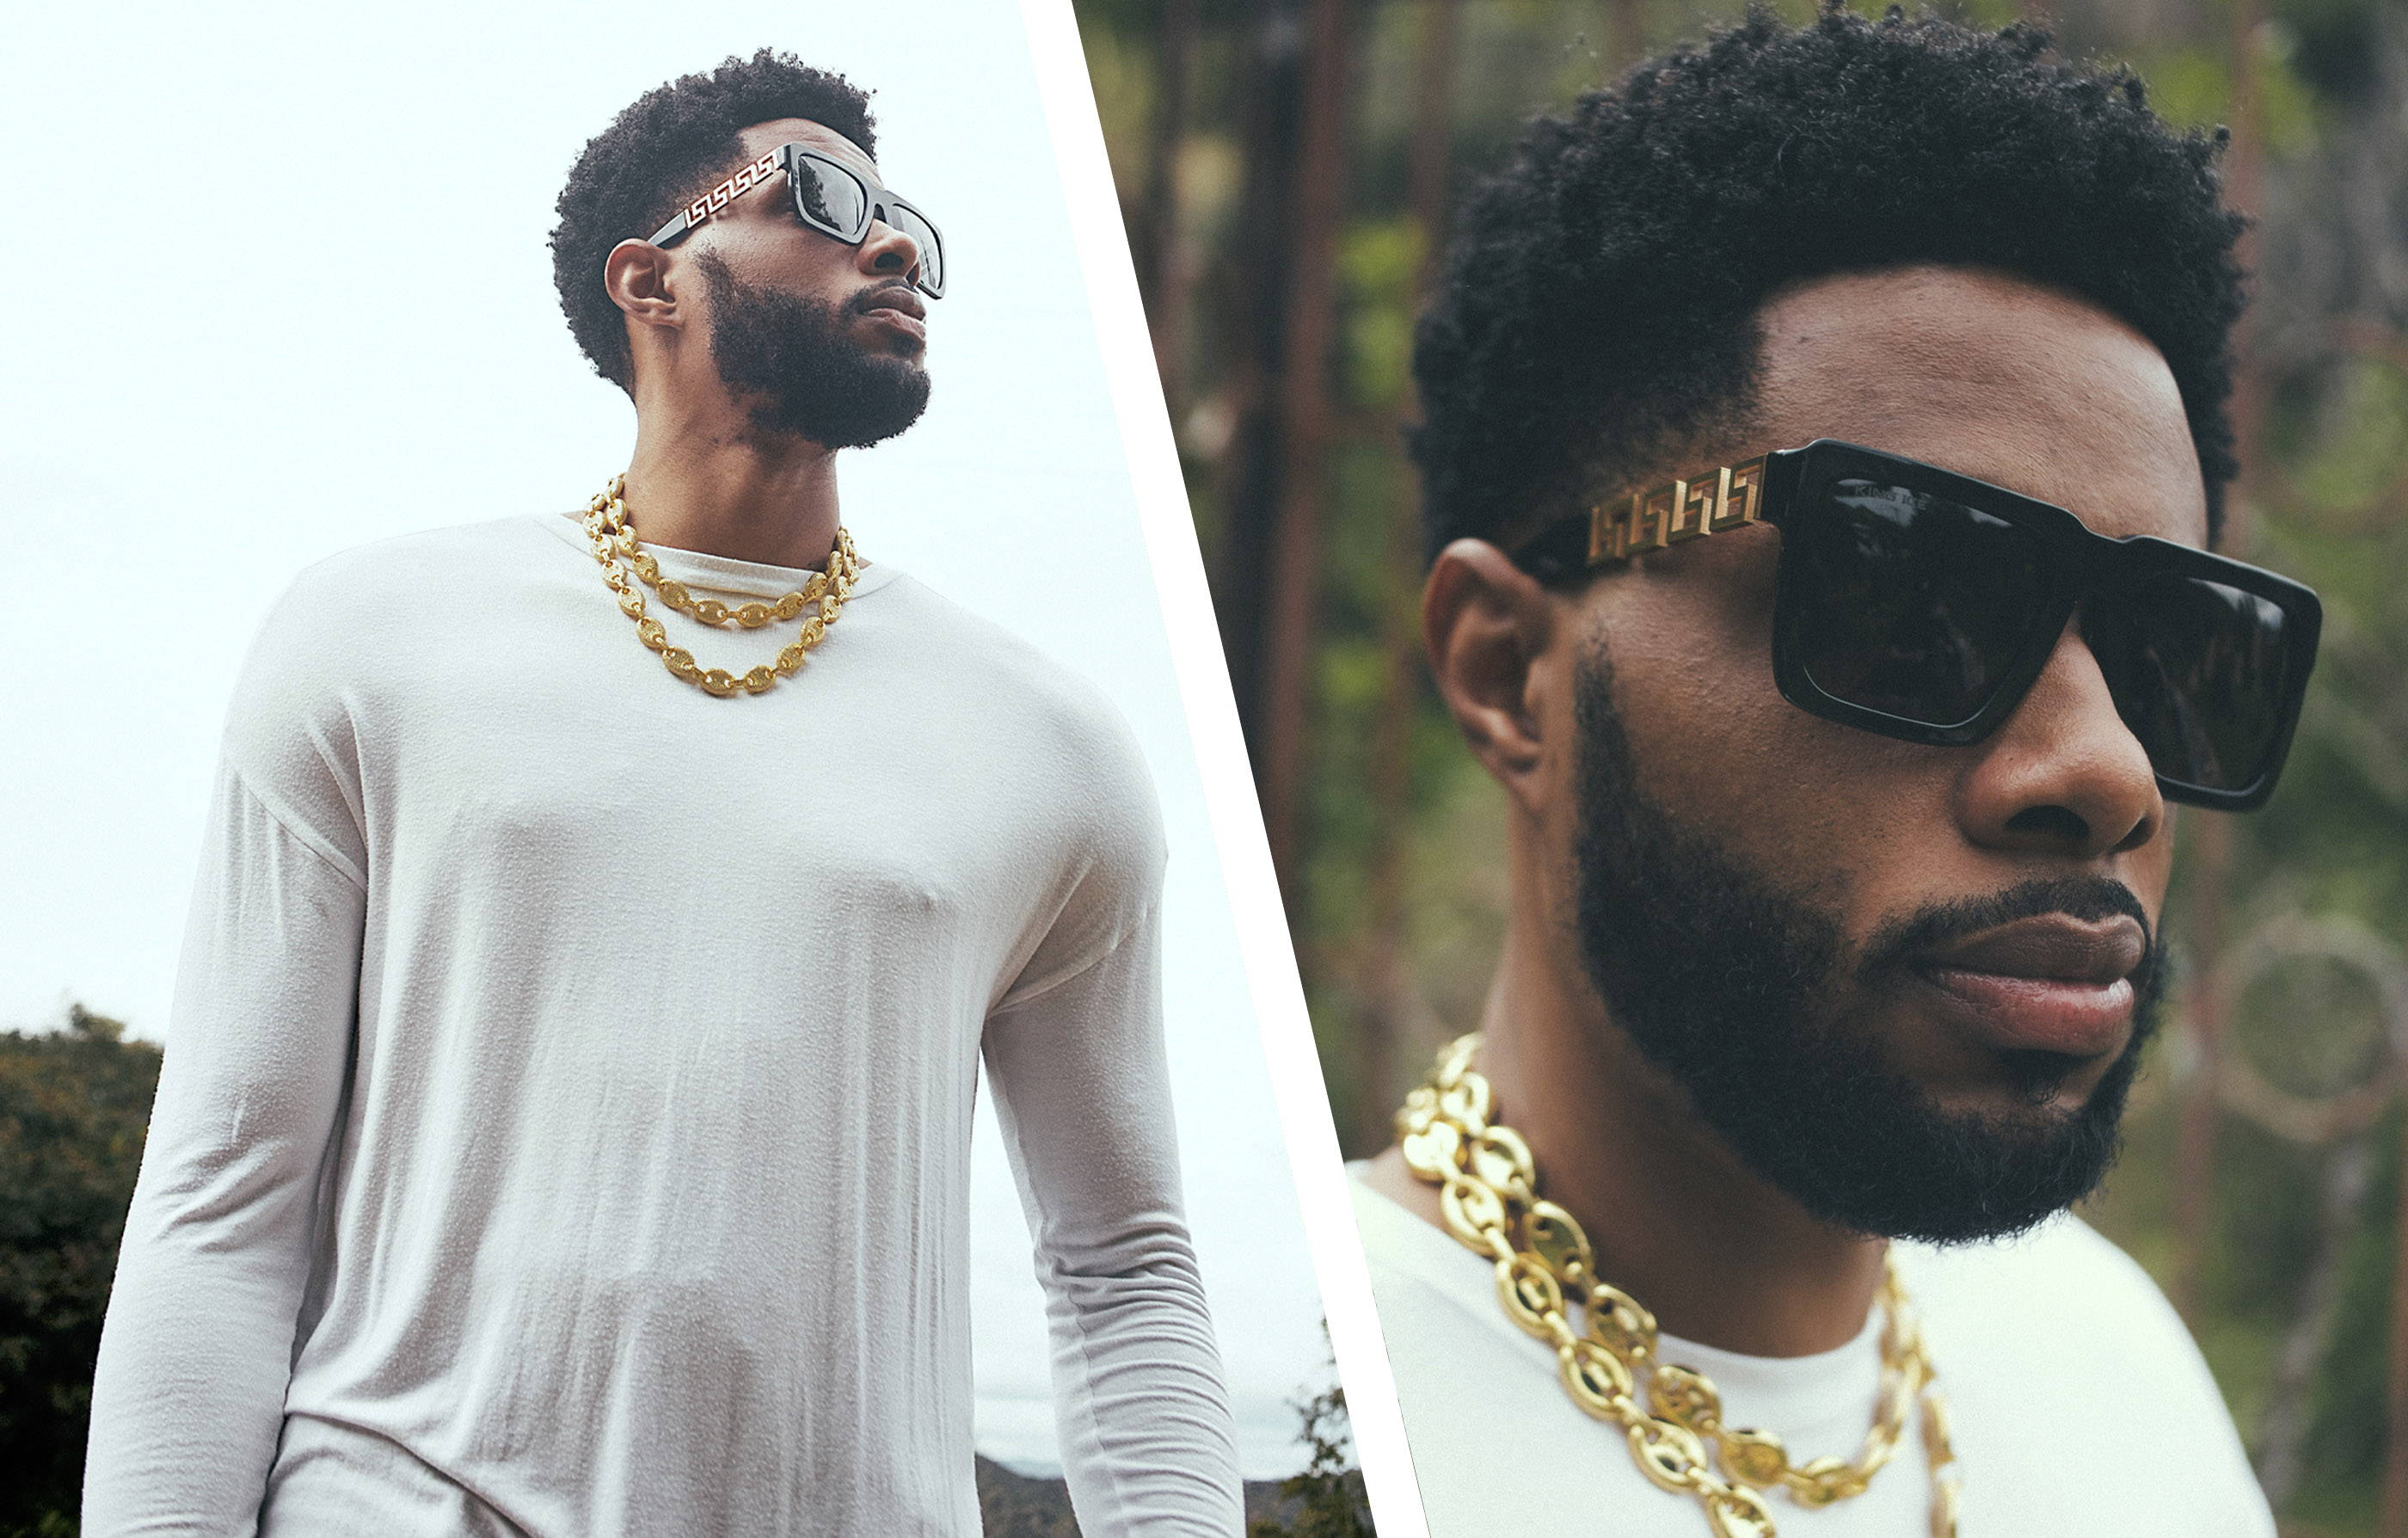 King Ice Shades Collection with Larry Drew II. Photographed by ceethreedom